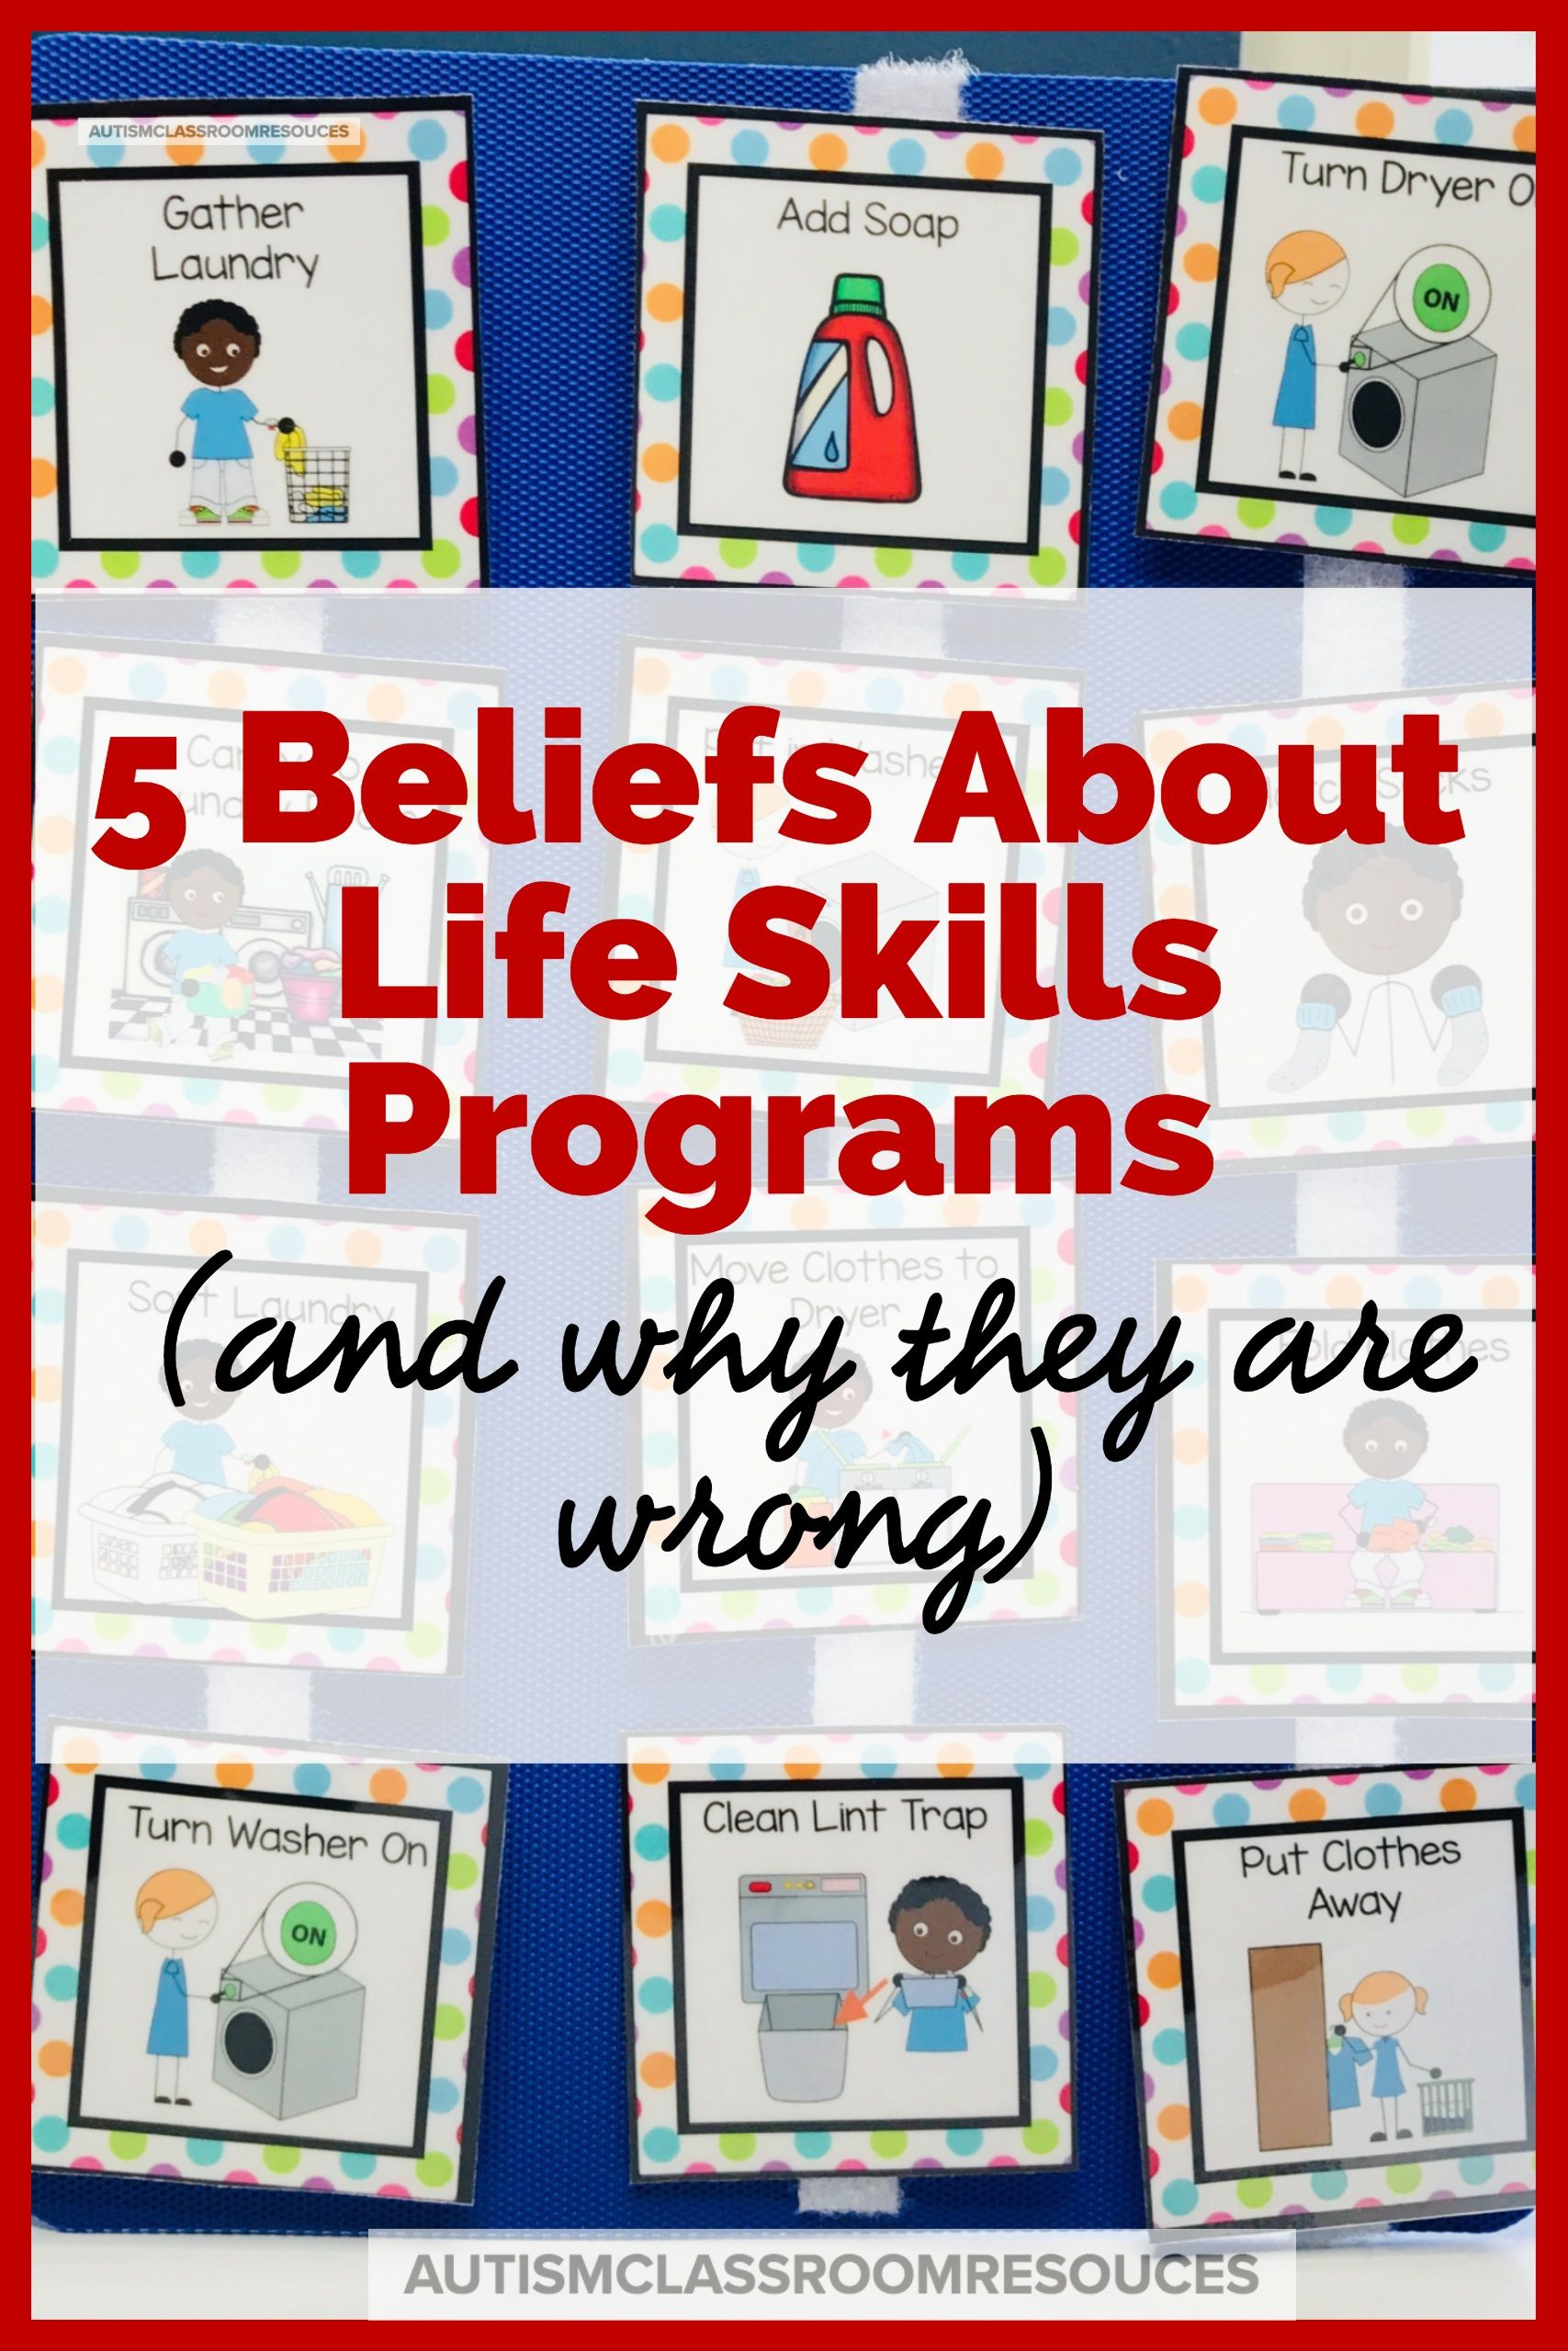 5 Myths About Functional Life Skills Programs